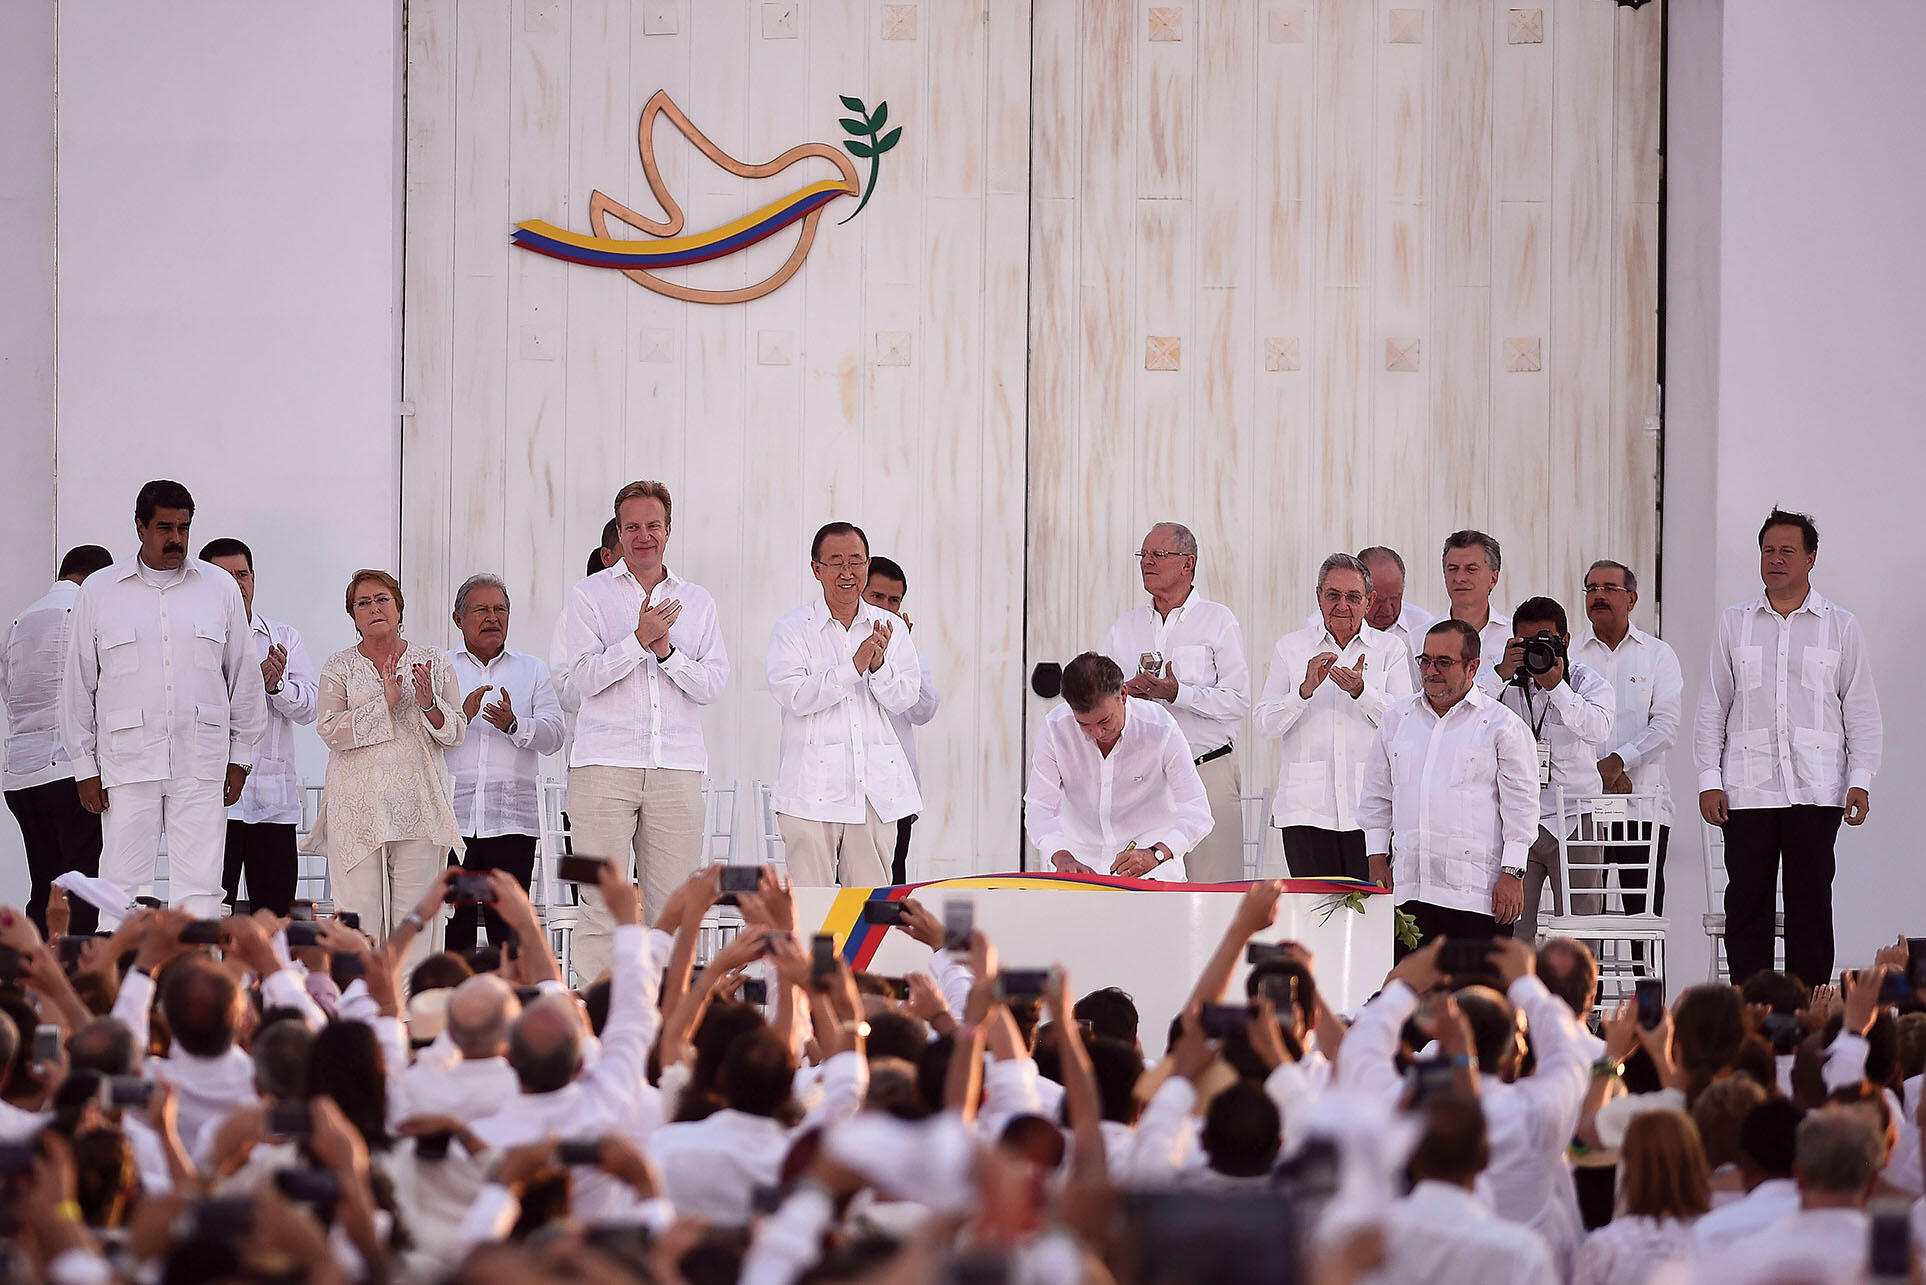 Latin American presidents on a stage to celebrate the 2016 signing of the initial peace accord in Colombia. (Photo by Ximena Navarro/presidencia.cl.)